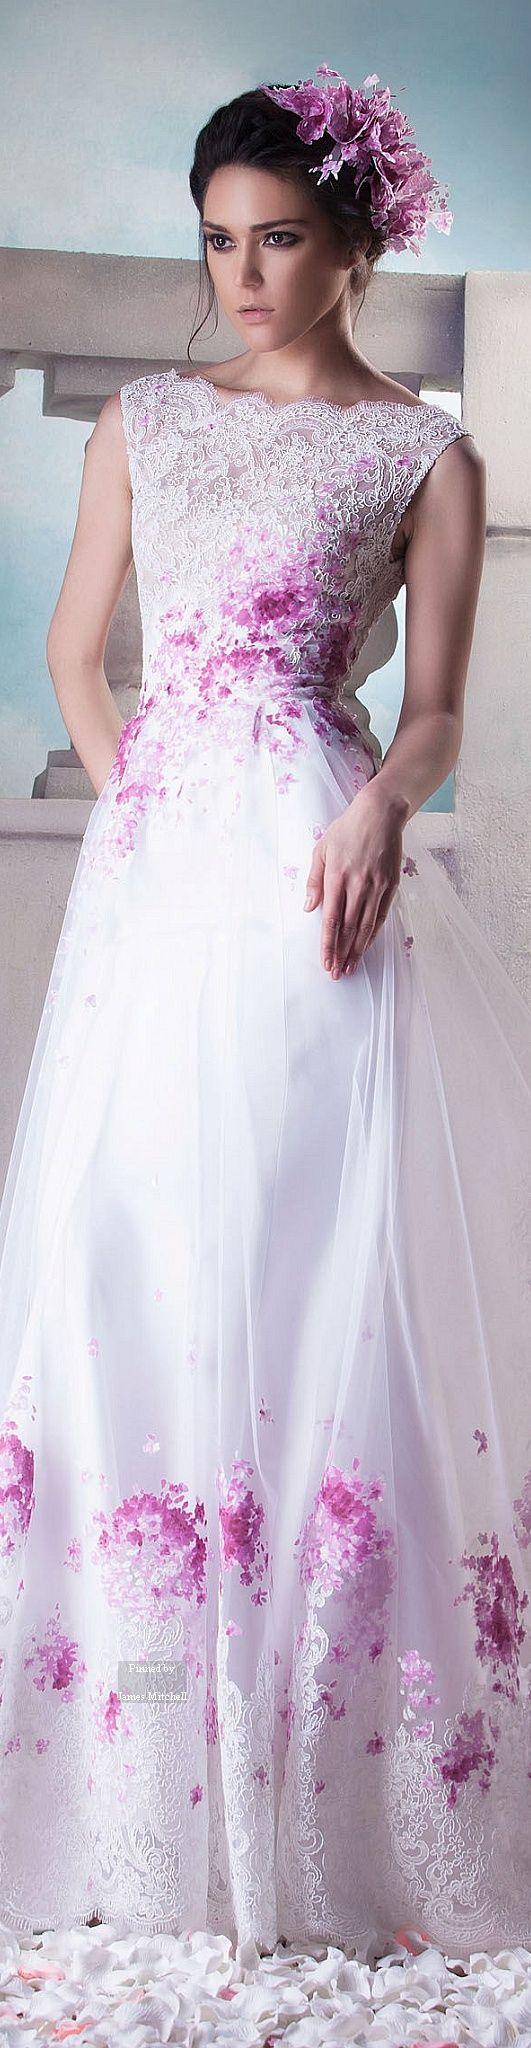 Hanna Touma ~ Couture Summer White Lace Gown w Floral Berry Details 2015